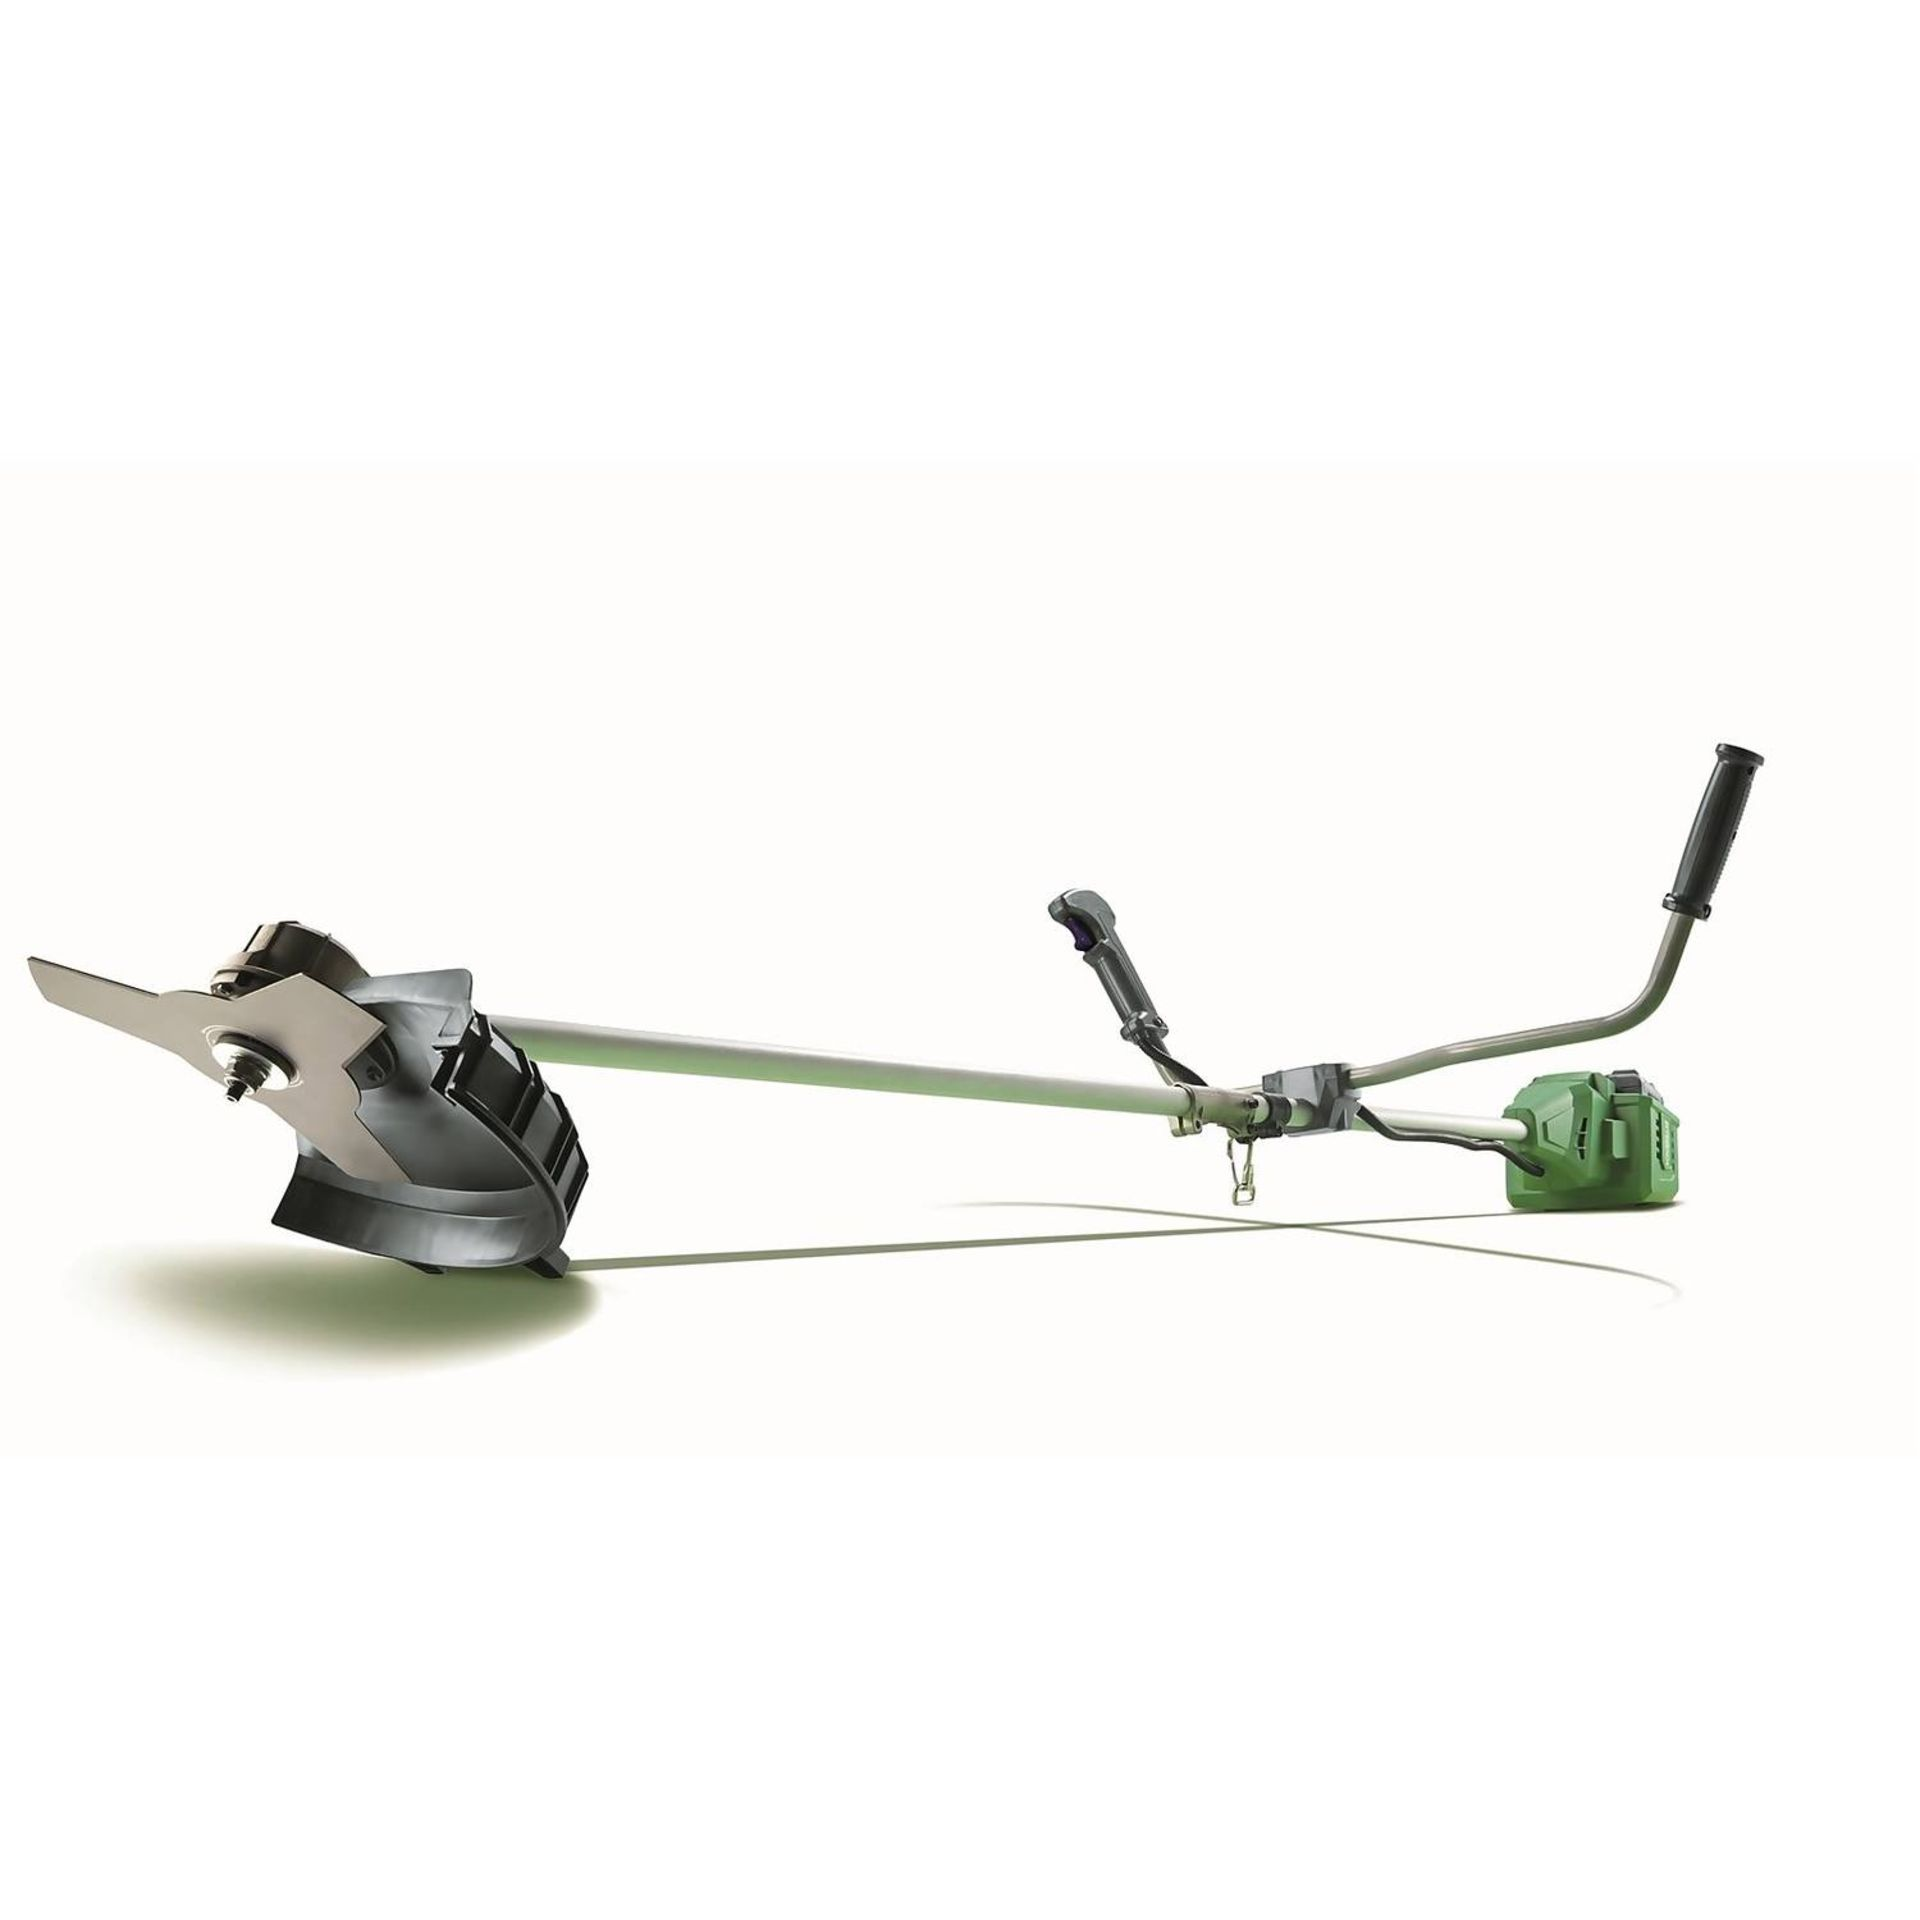 (P9) 1x Powerbase 34cm 40V Cordless Brush Cutter RRP £129. Contents Appear Clean, Unused With Batt